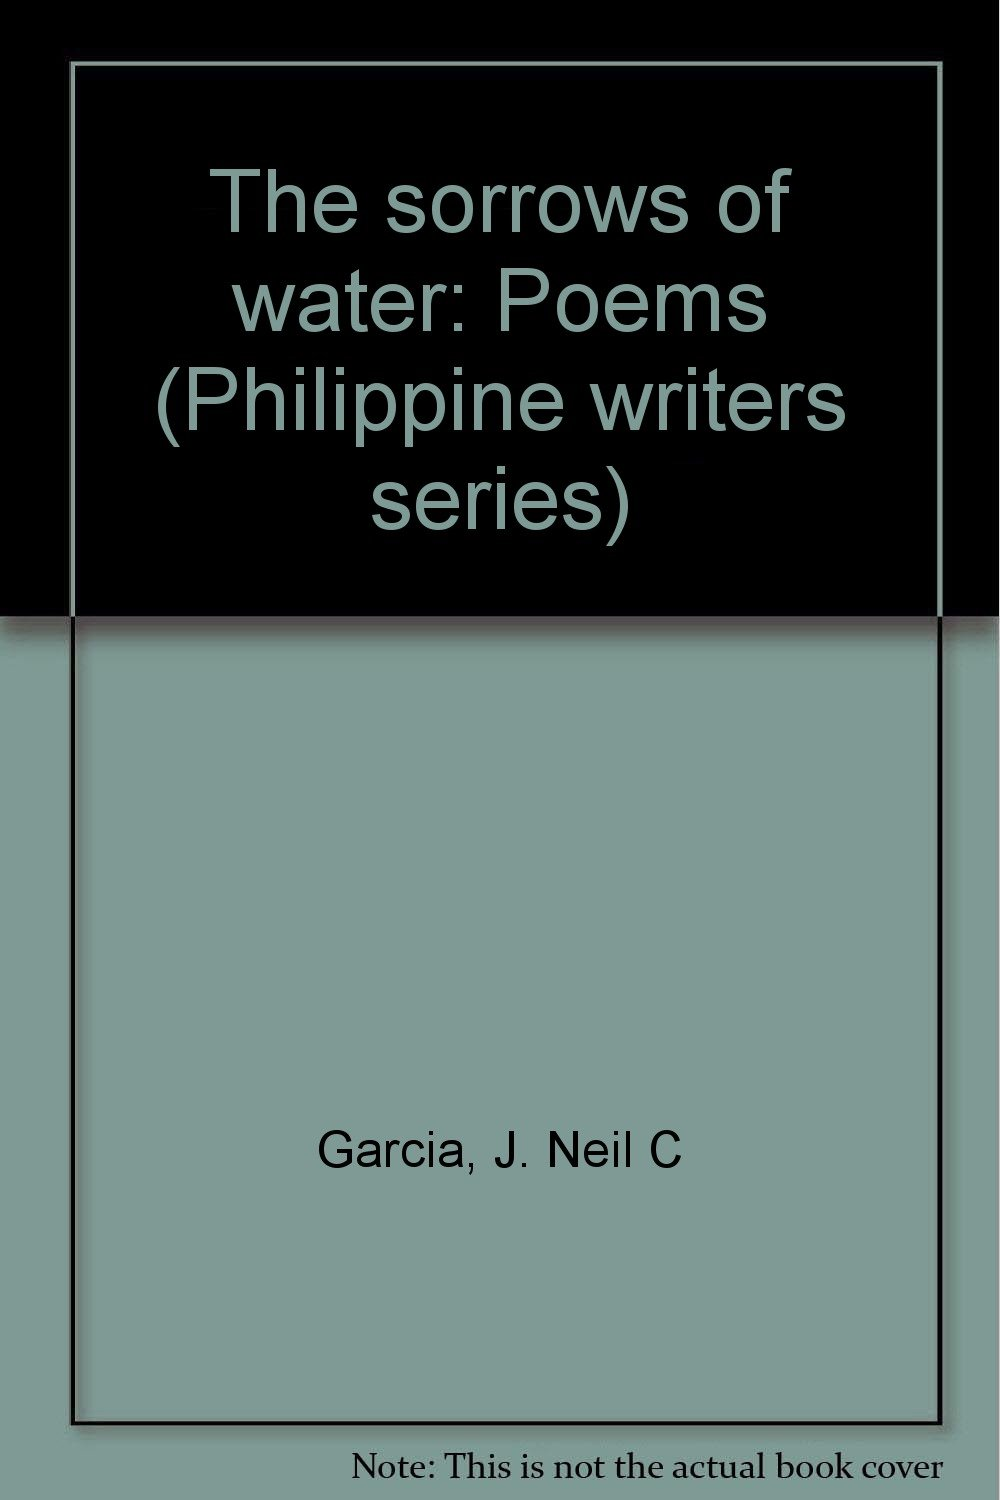 The sorrows of water: Poems (Philippine writers series): J